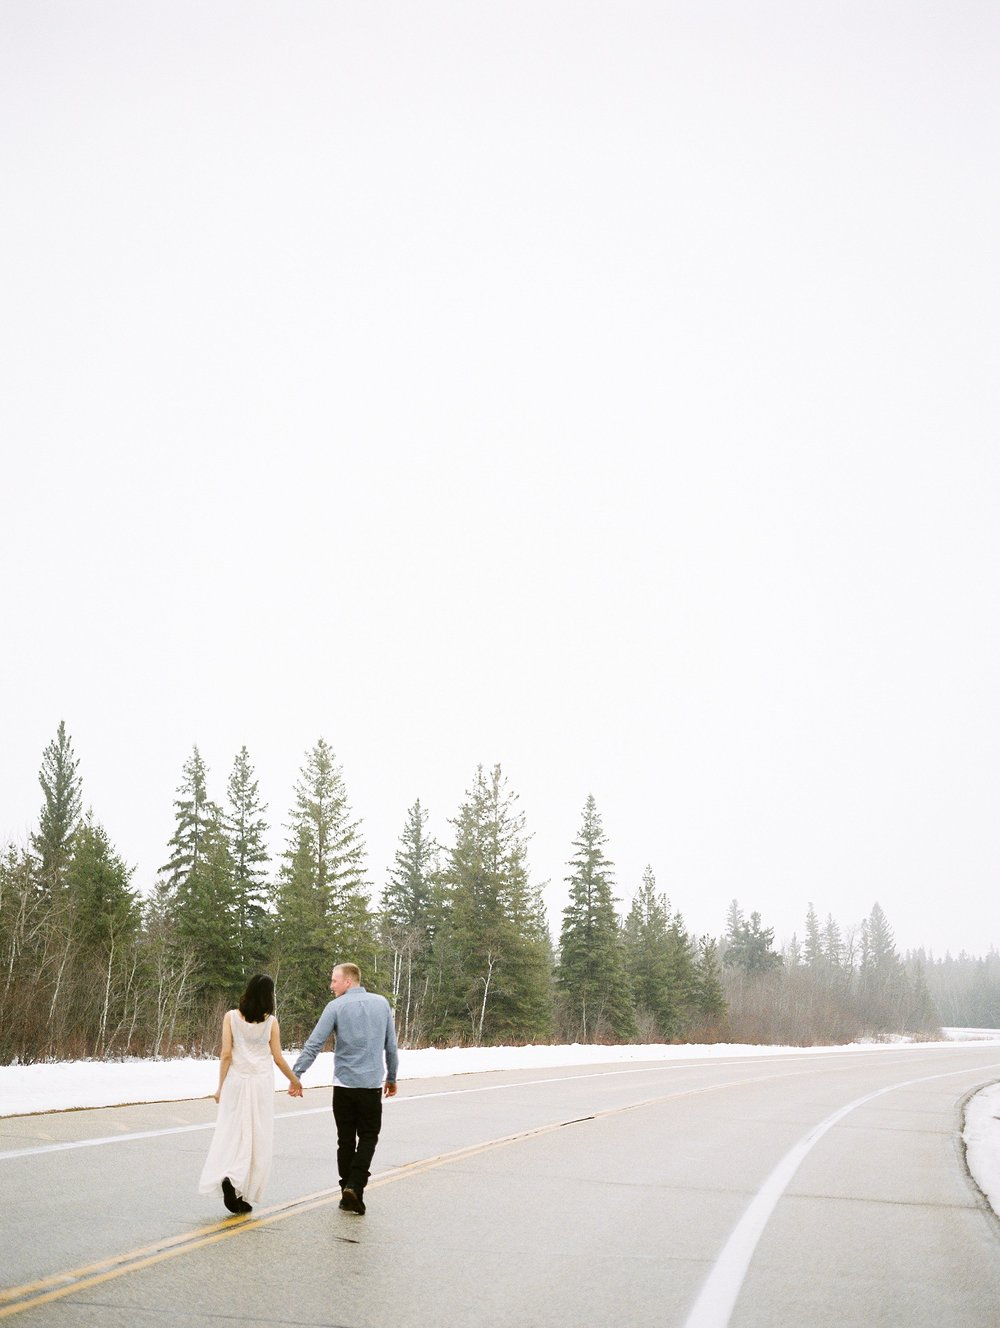 couples photoshoot in winter | photographed by fine art film photographer Keila Marie Photography